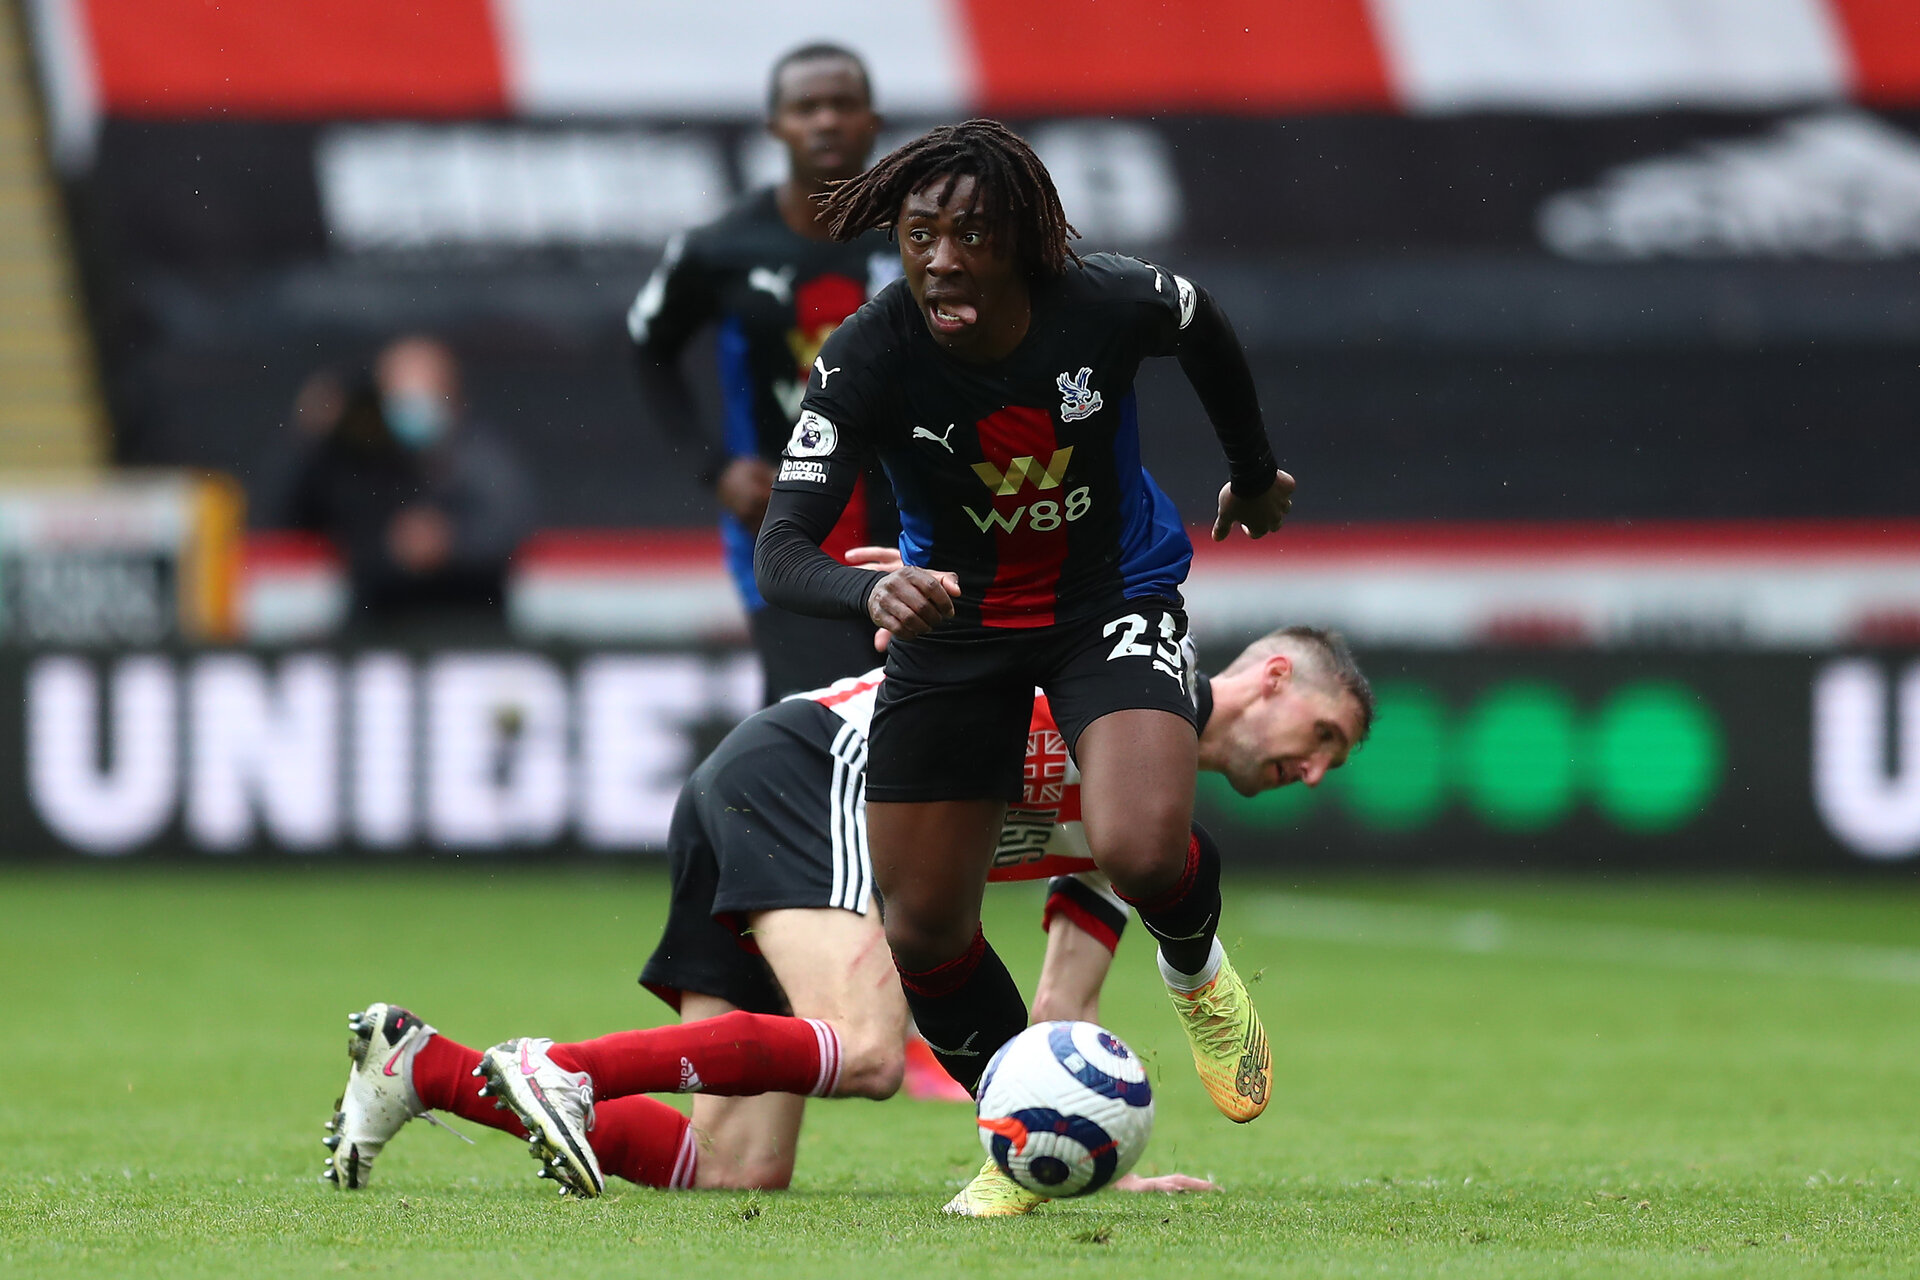 SHEFFIELD, ENGLAND - MAY 08: Eberechi Eze of Crystal Palace  runs with the ball  during the Premier League match between Sheffield United and Crystal Palace at Bramall Lane on May 08, 2021 in Sheffield, England. Sporting stadiums around the UK remain under strict restrictions due to the Coronavirus Pandemic as Government social distancing laws prohibit fans inside venues resulting in games being played behind closed doors. (Photo by Jan Kruger/Getty Images)